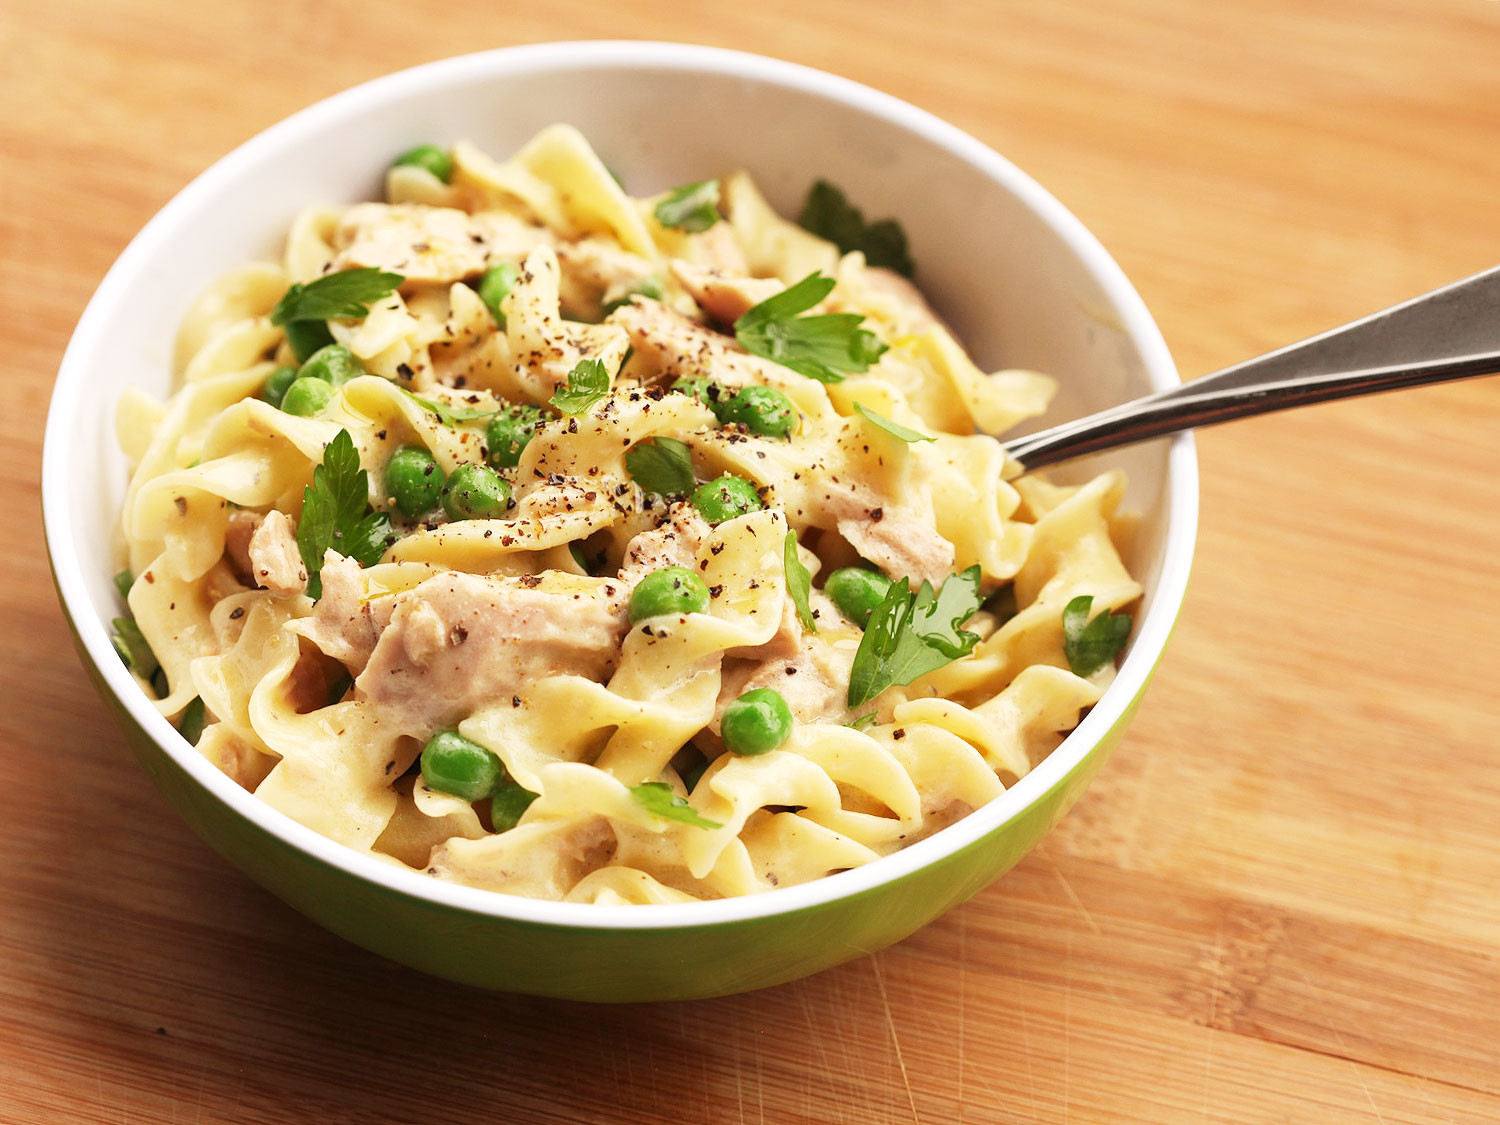 Easy Healthy Tuna Noodle Casserole  The Food Lab Turbo How to Make Lighter Tuna Noodle